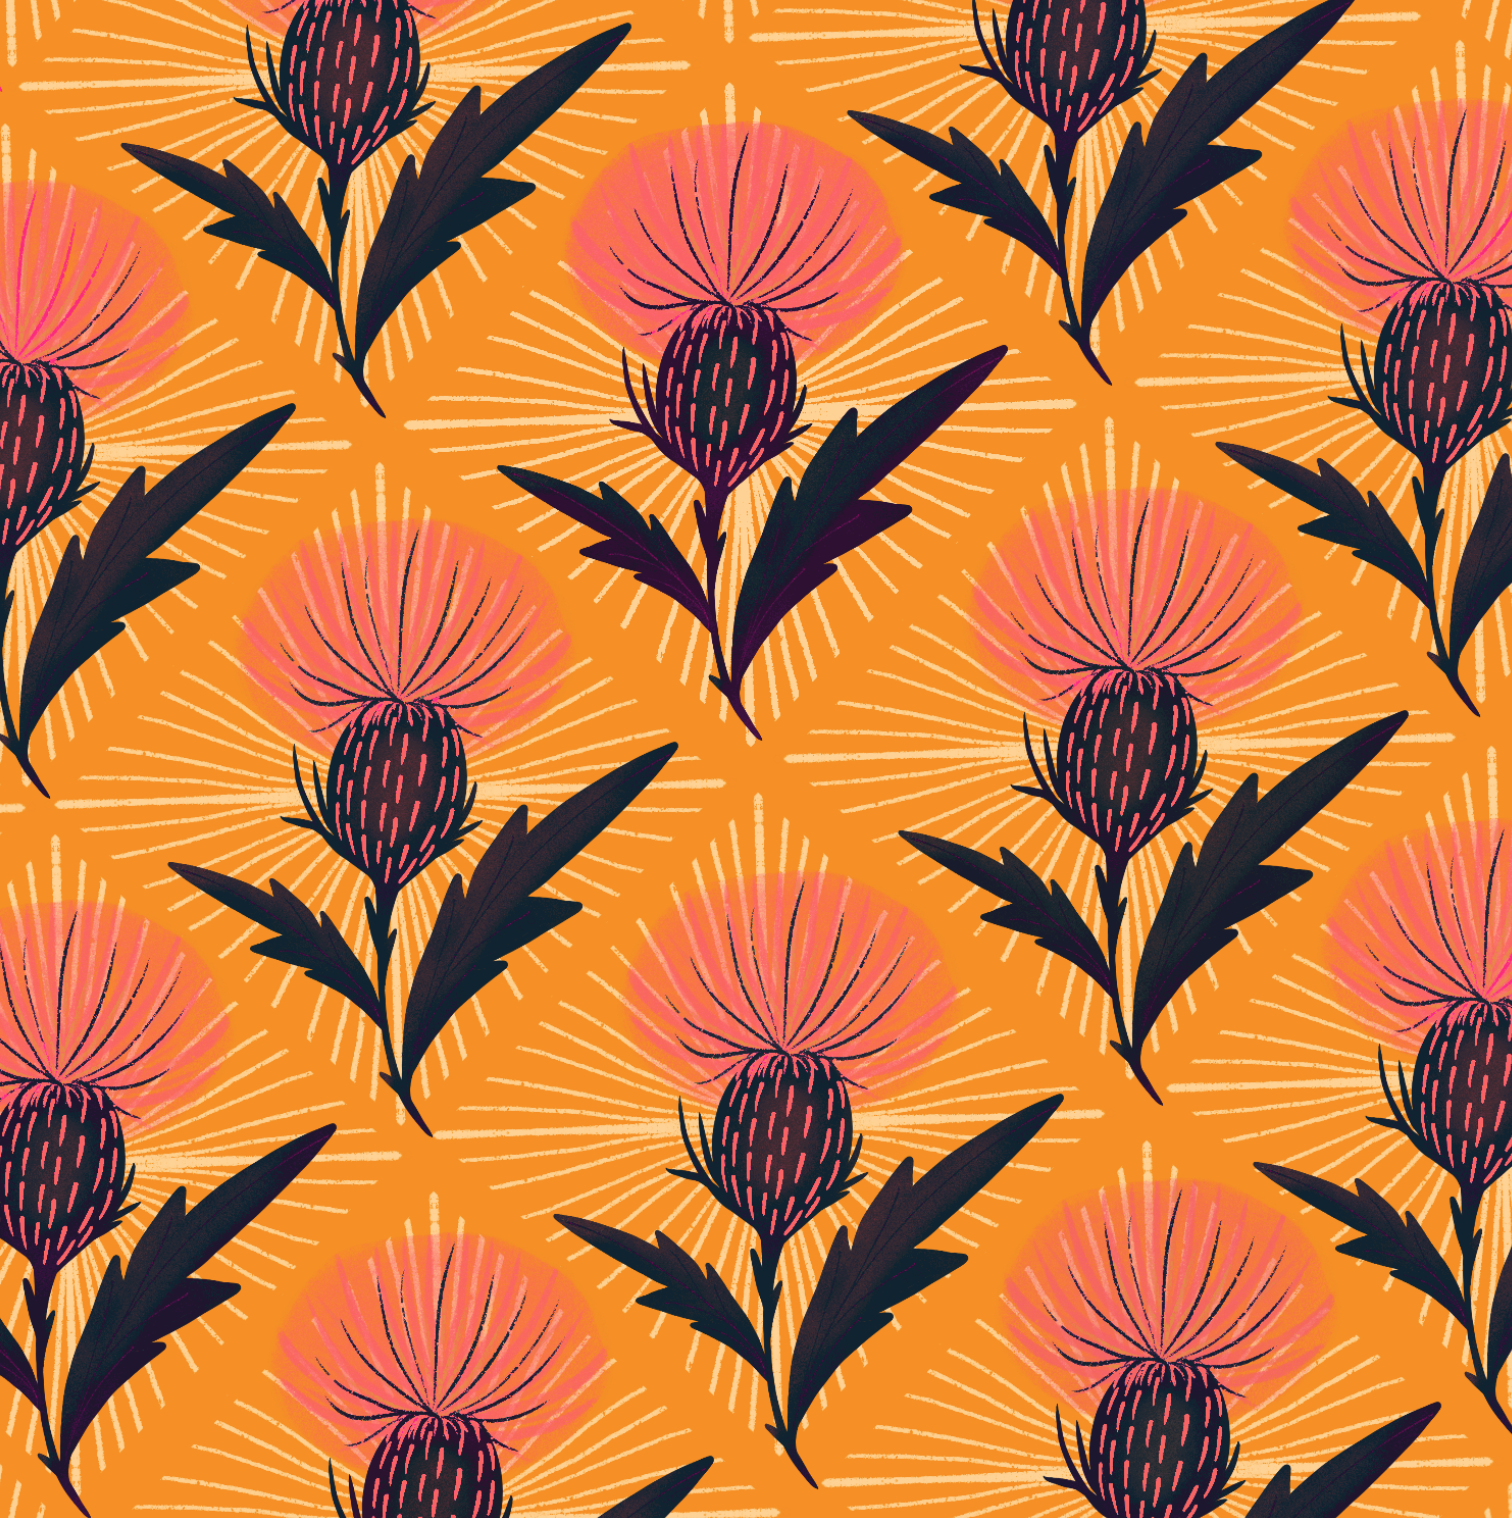 pink bull thistles on a yellow background with a diamond patterned background